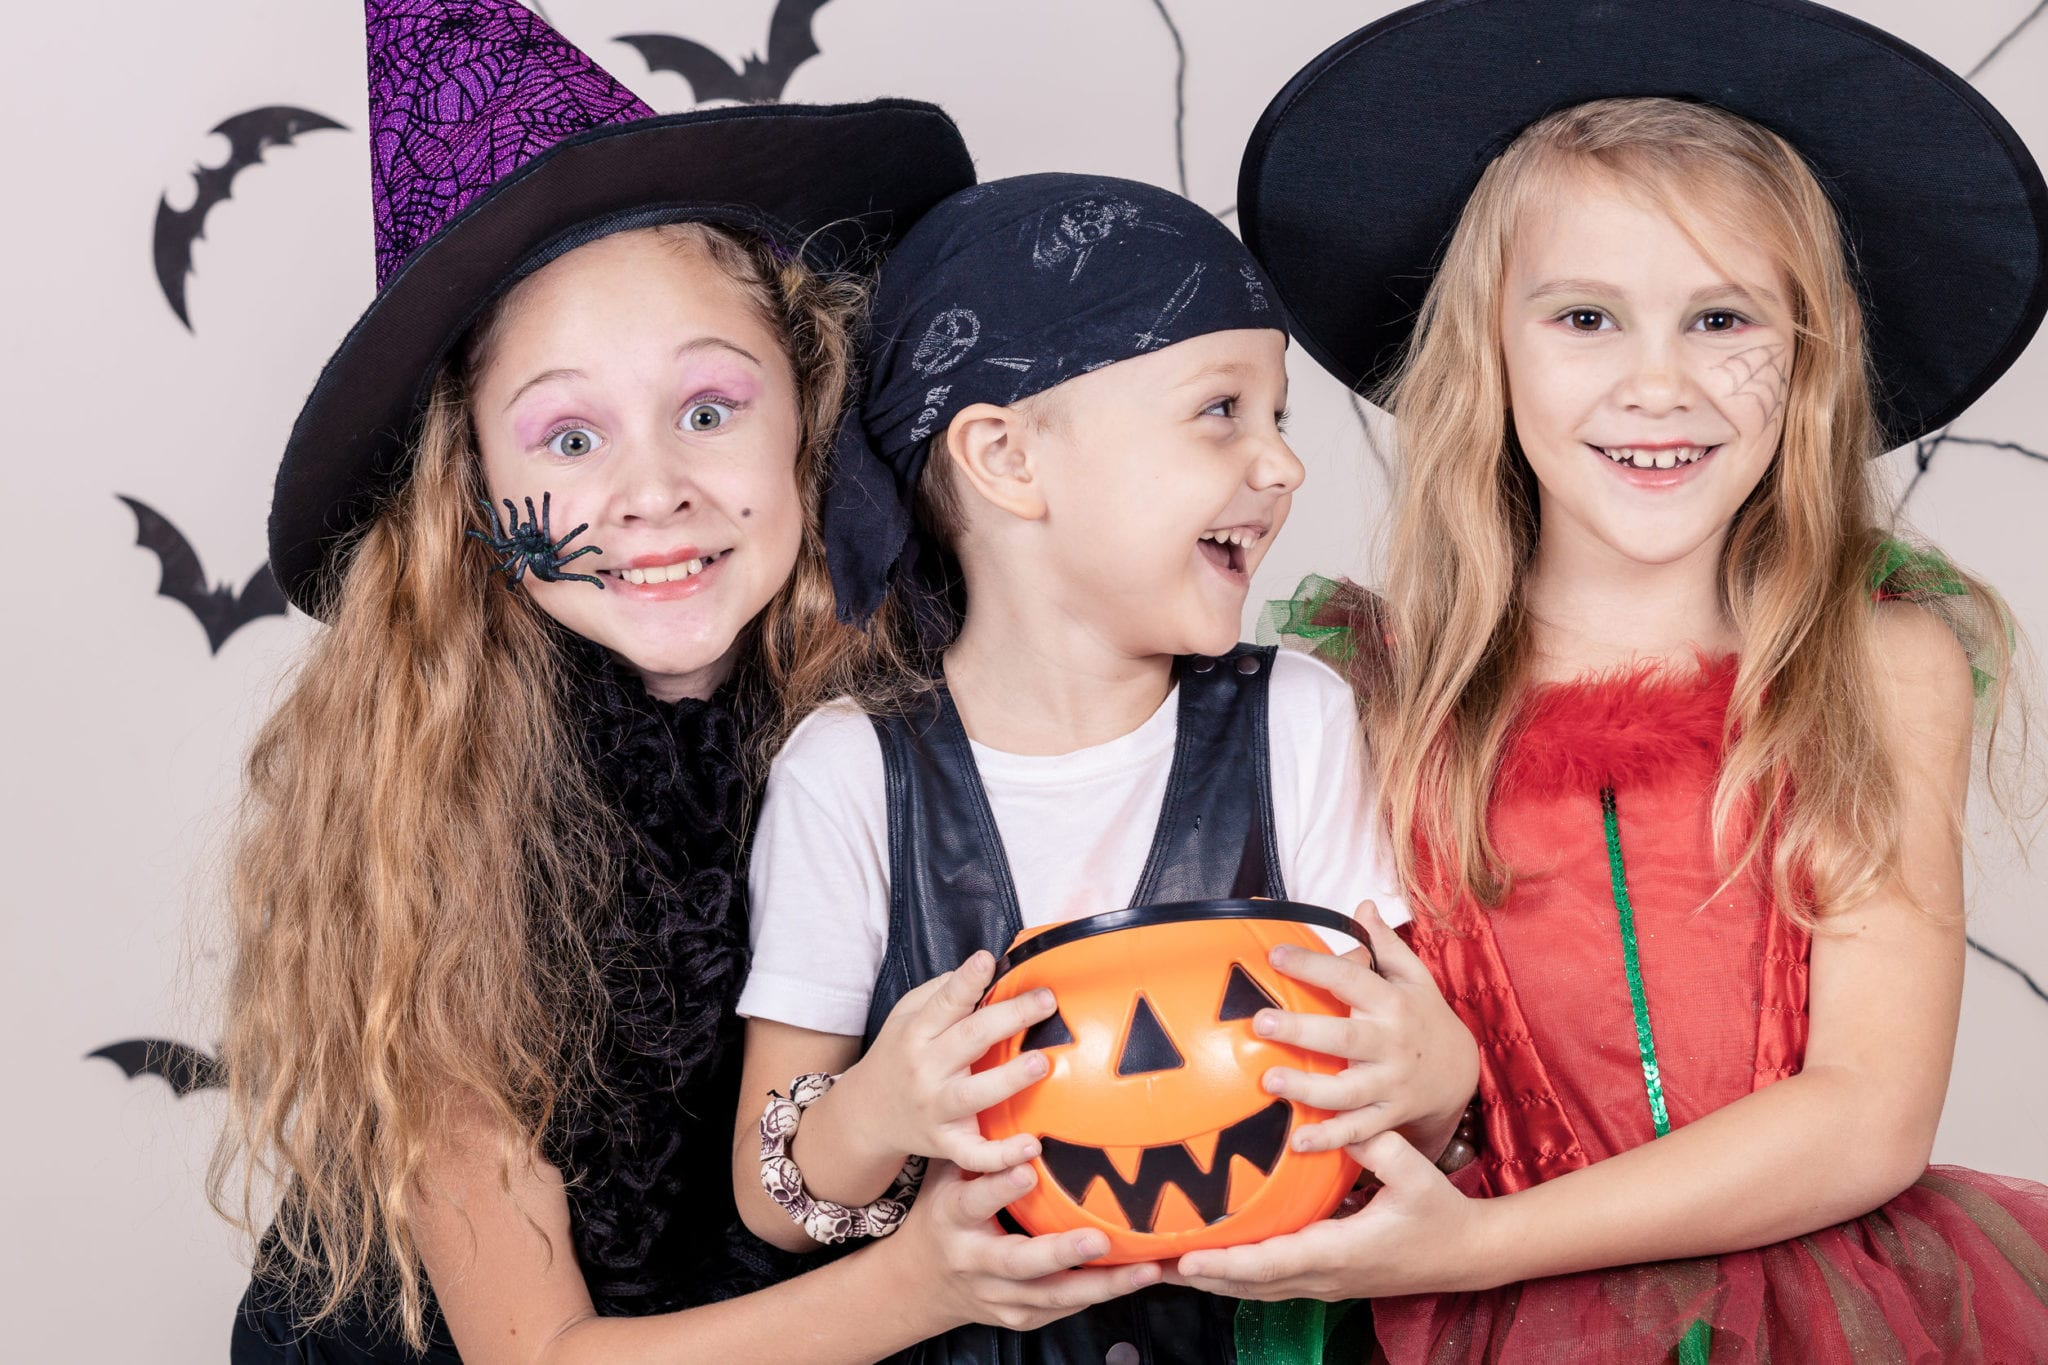 Halloween in Texas: Delicious Fun for Kids - If You Know the Dangers